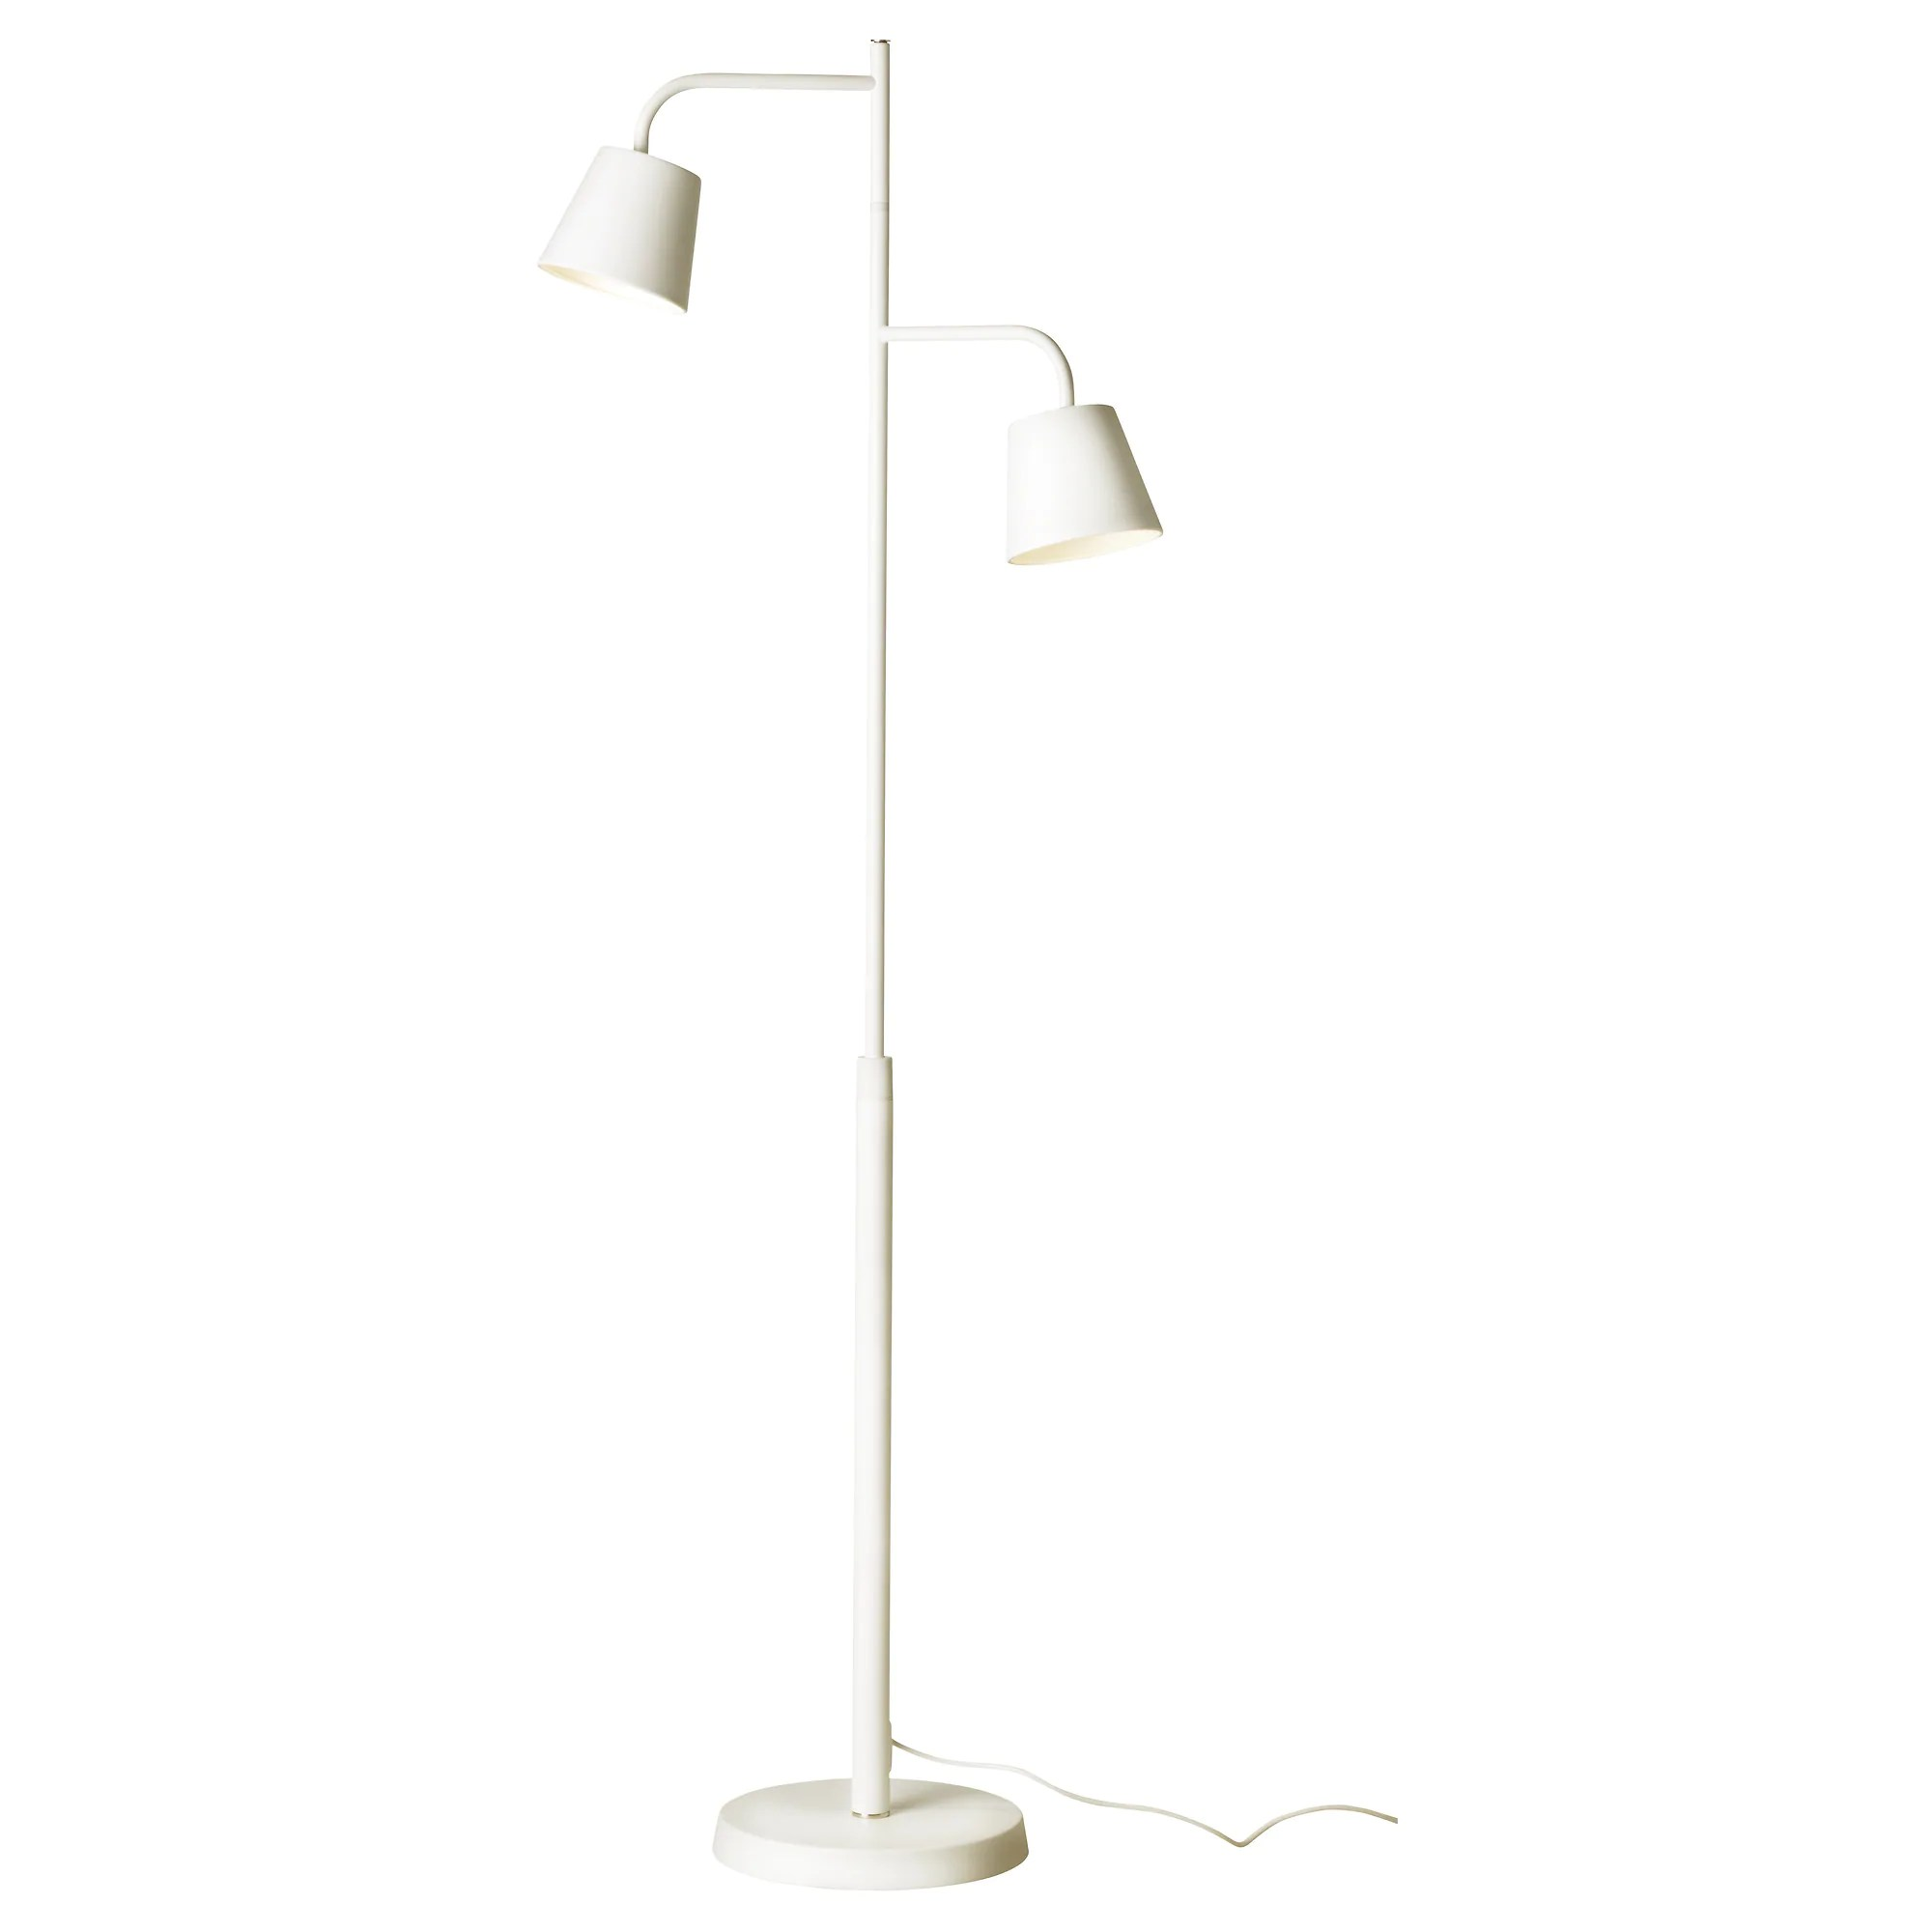 Aufbewahrung Ikea Amazon Ikea Orgel Floor Lamp Room Divider Nazarm